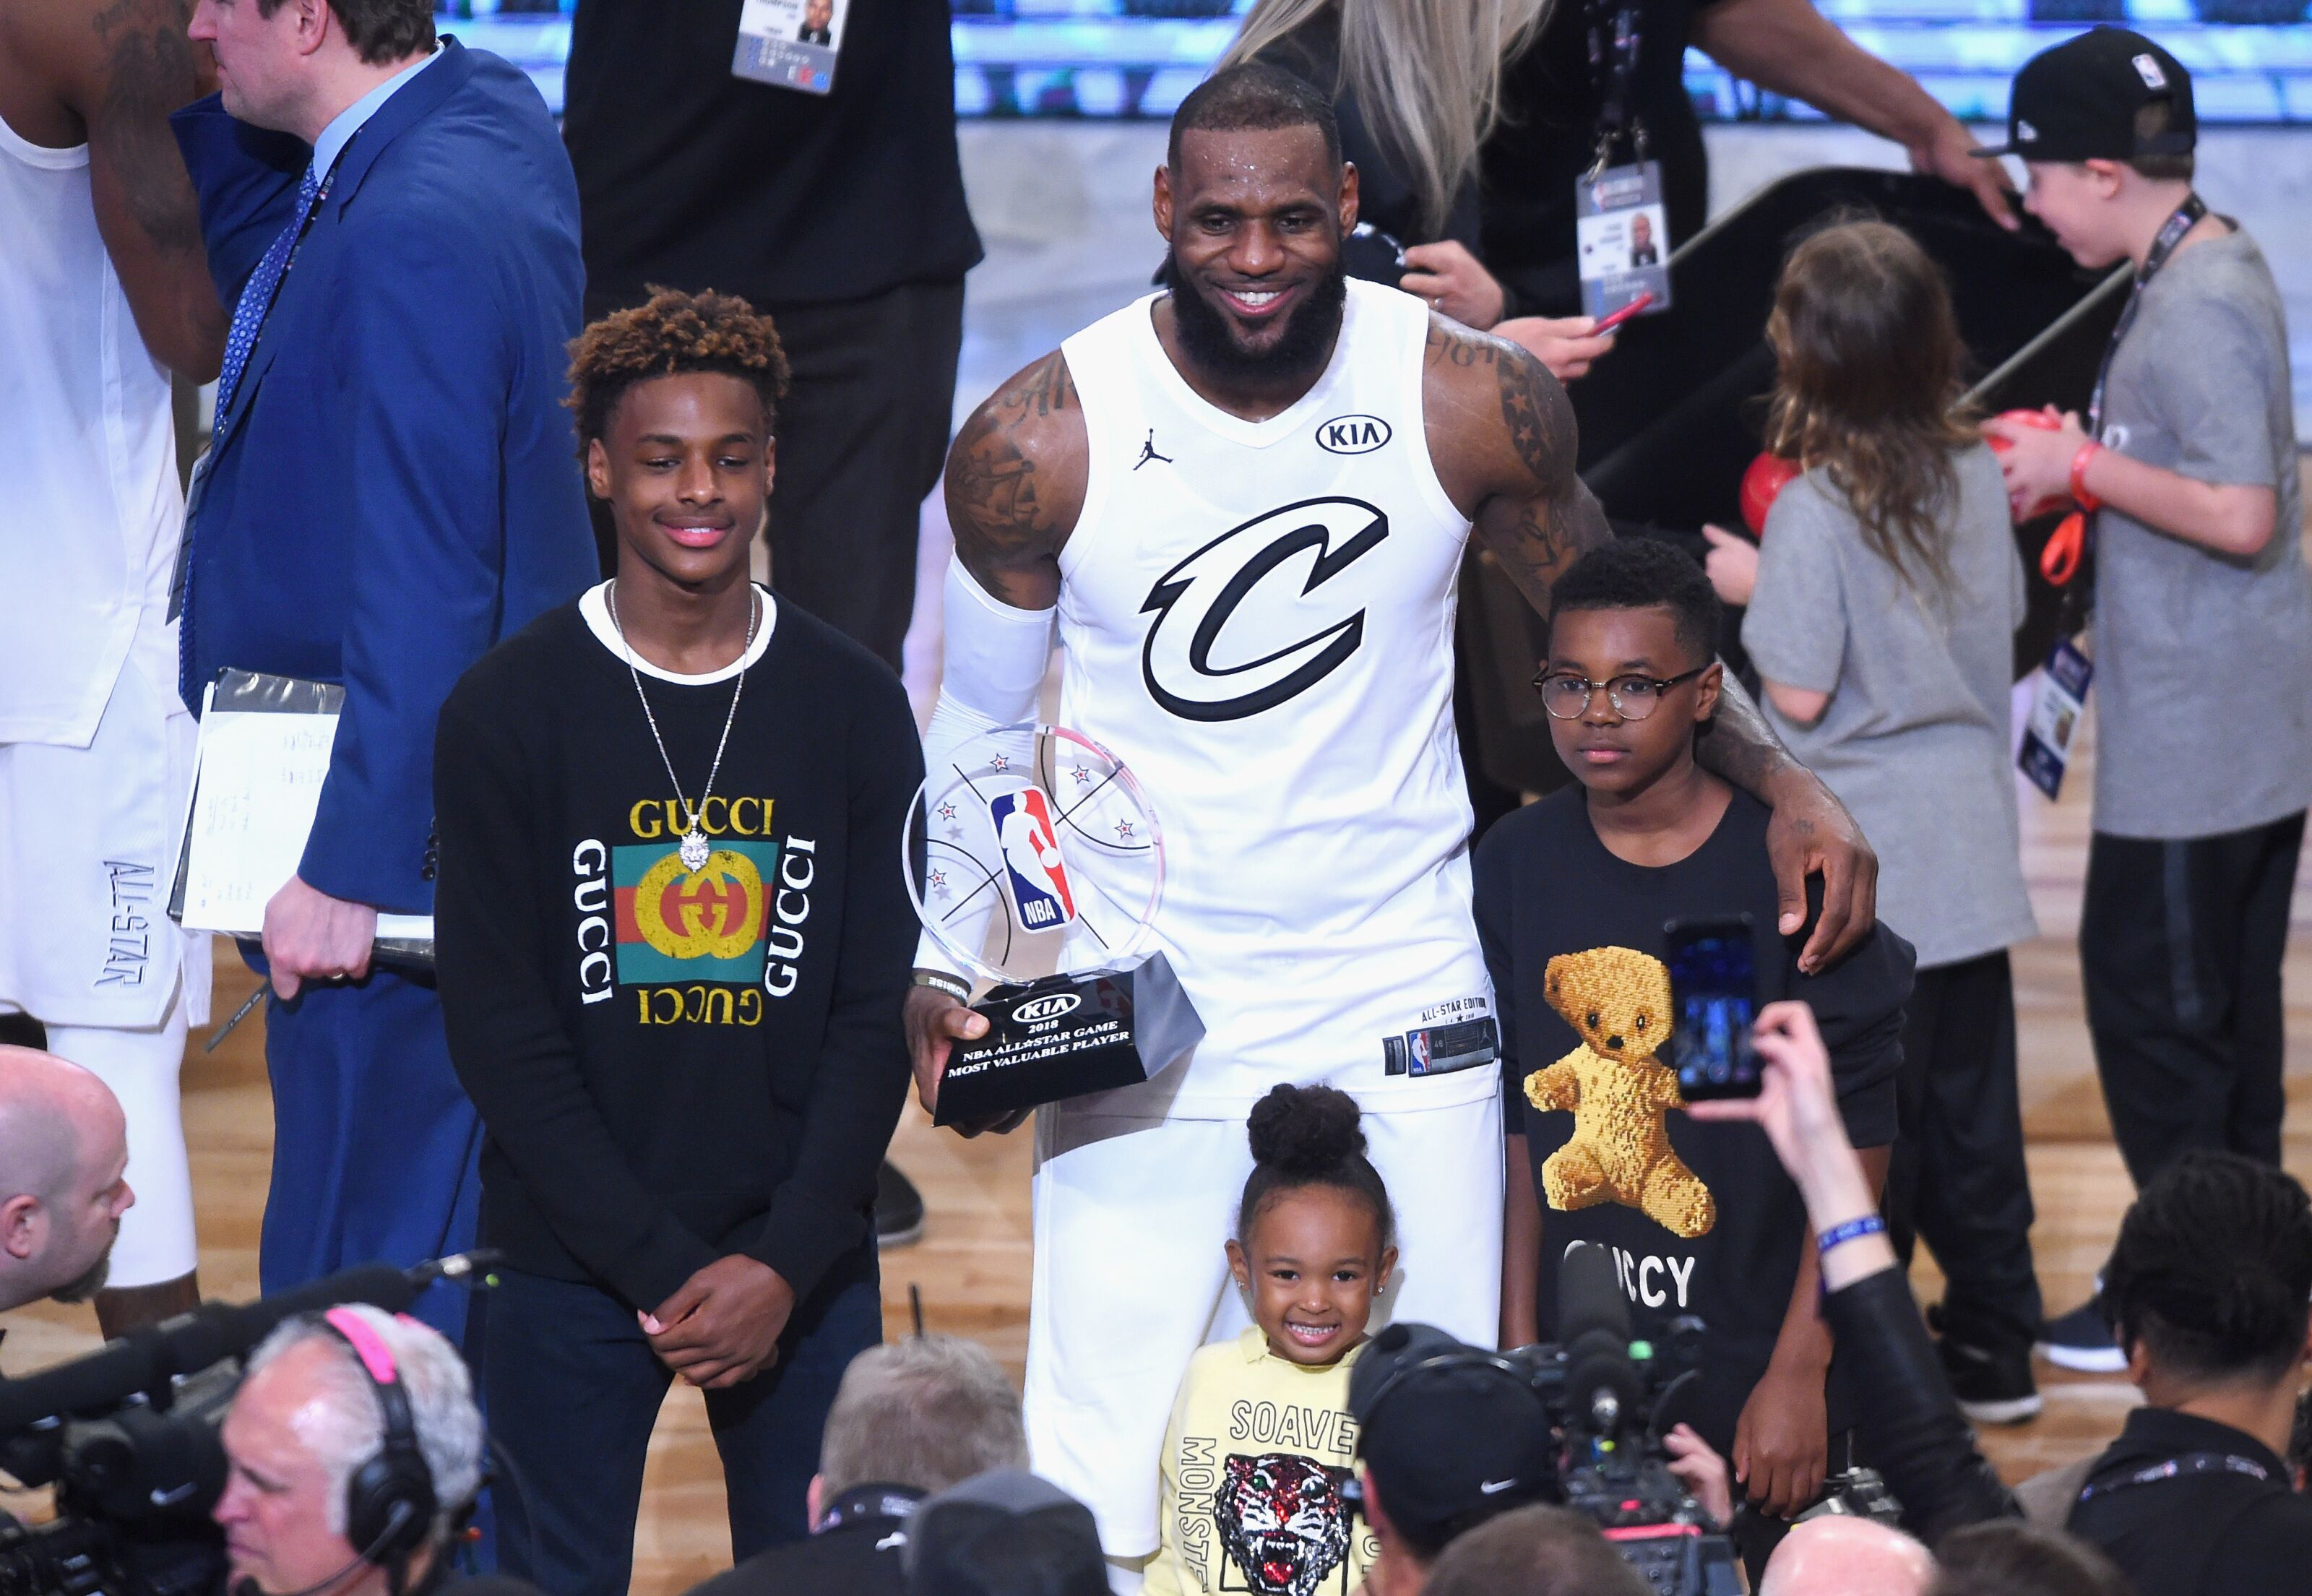 LeBron James' son teaming up with Wade's kid on high-school